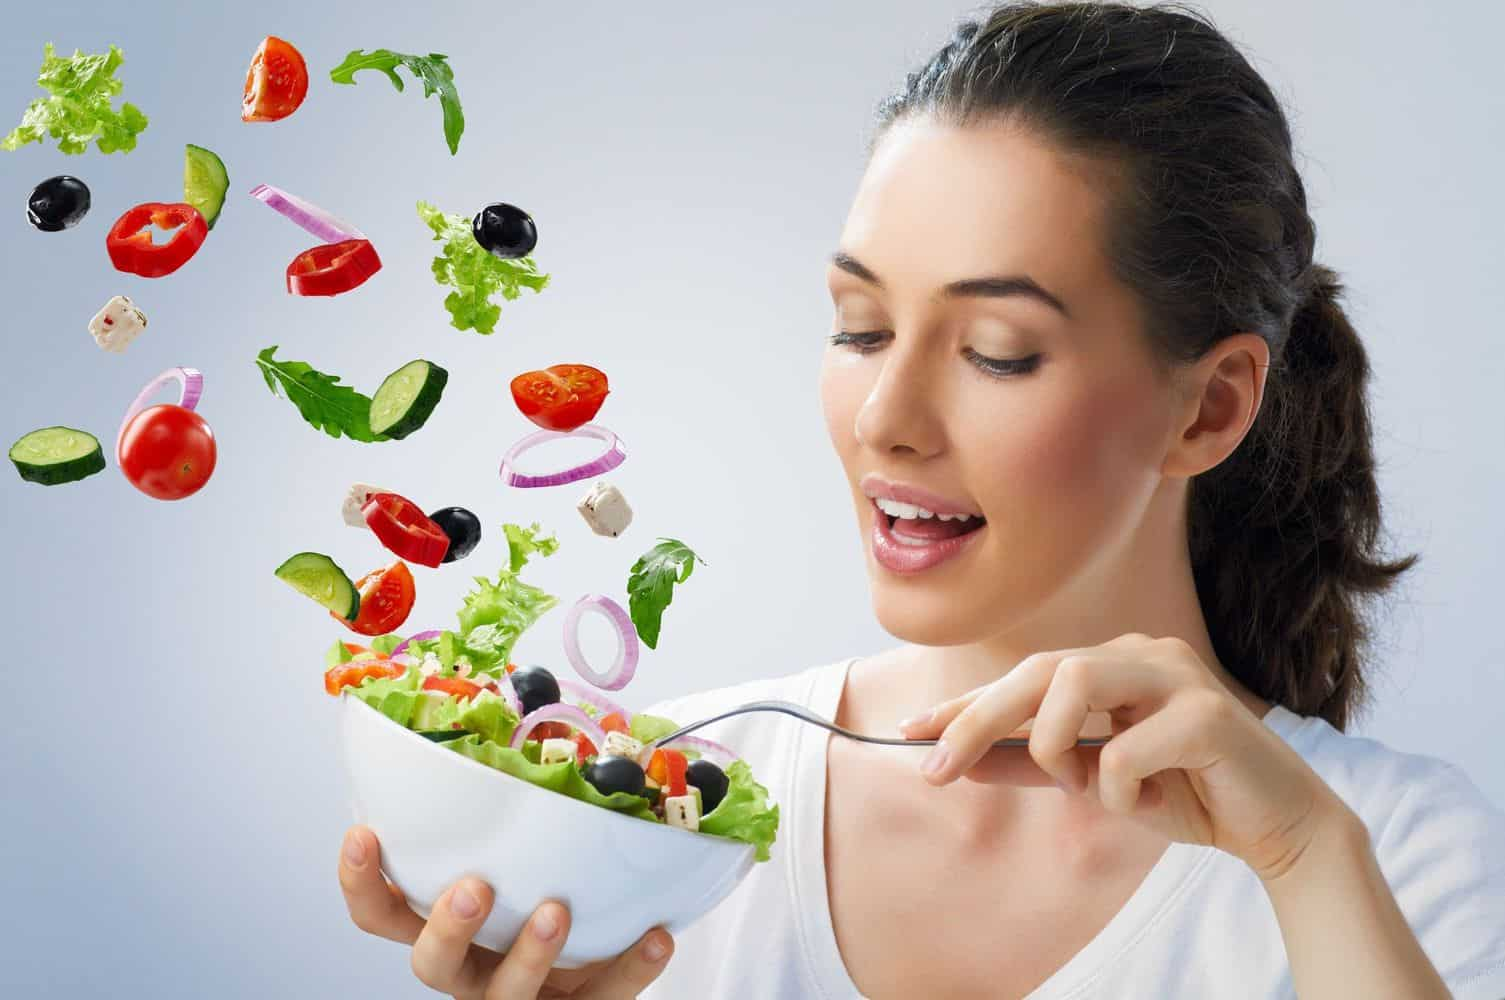 A woman getting a bowl of vegetables